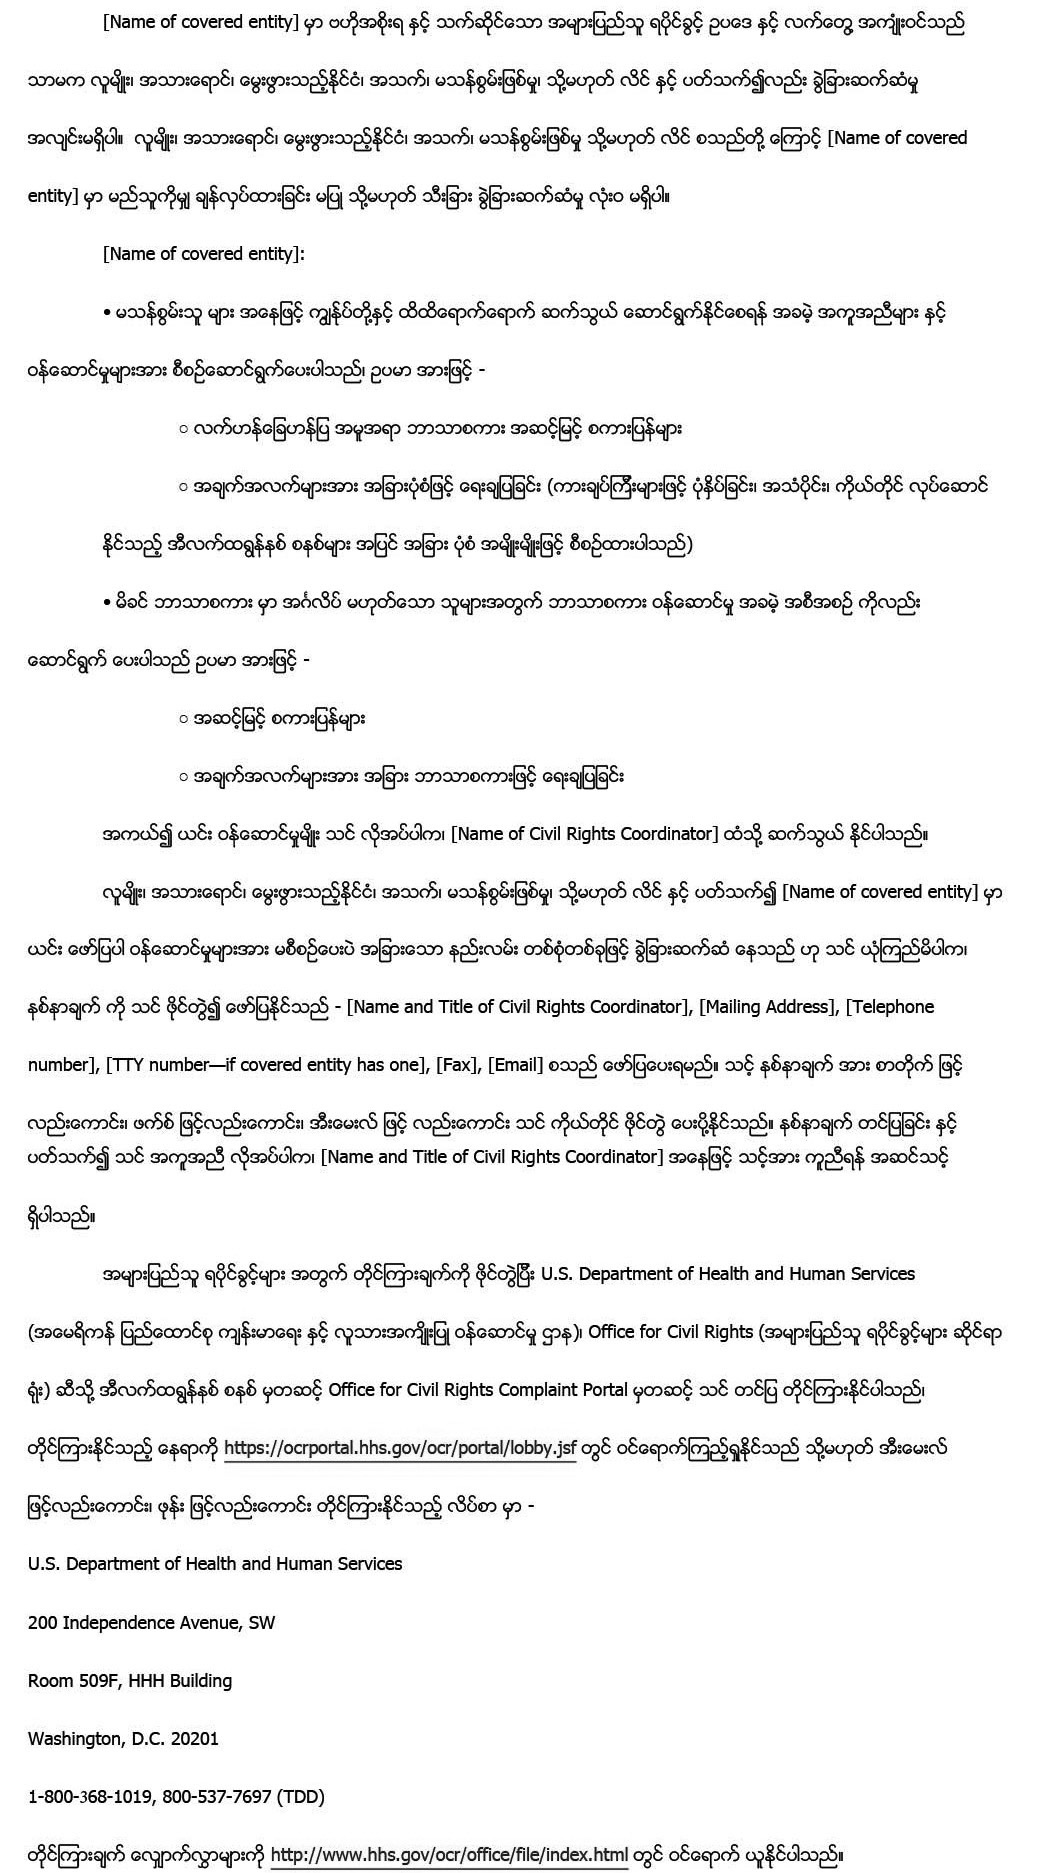 sample ce notice burmese